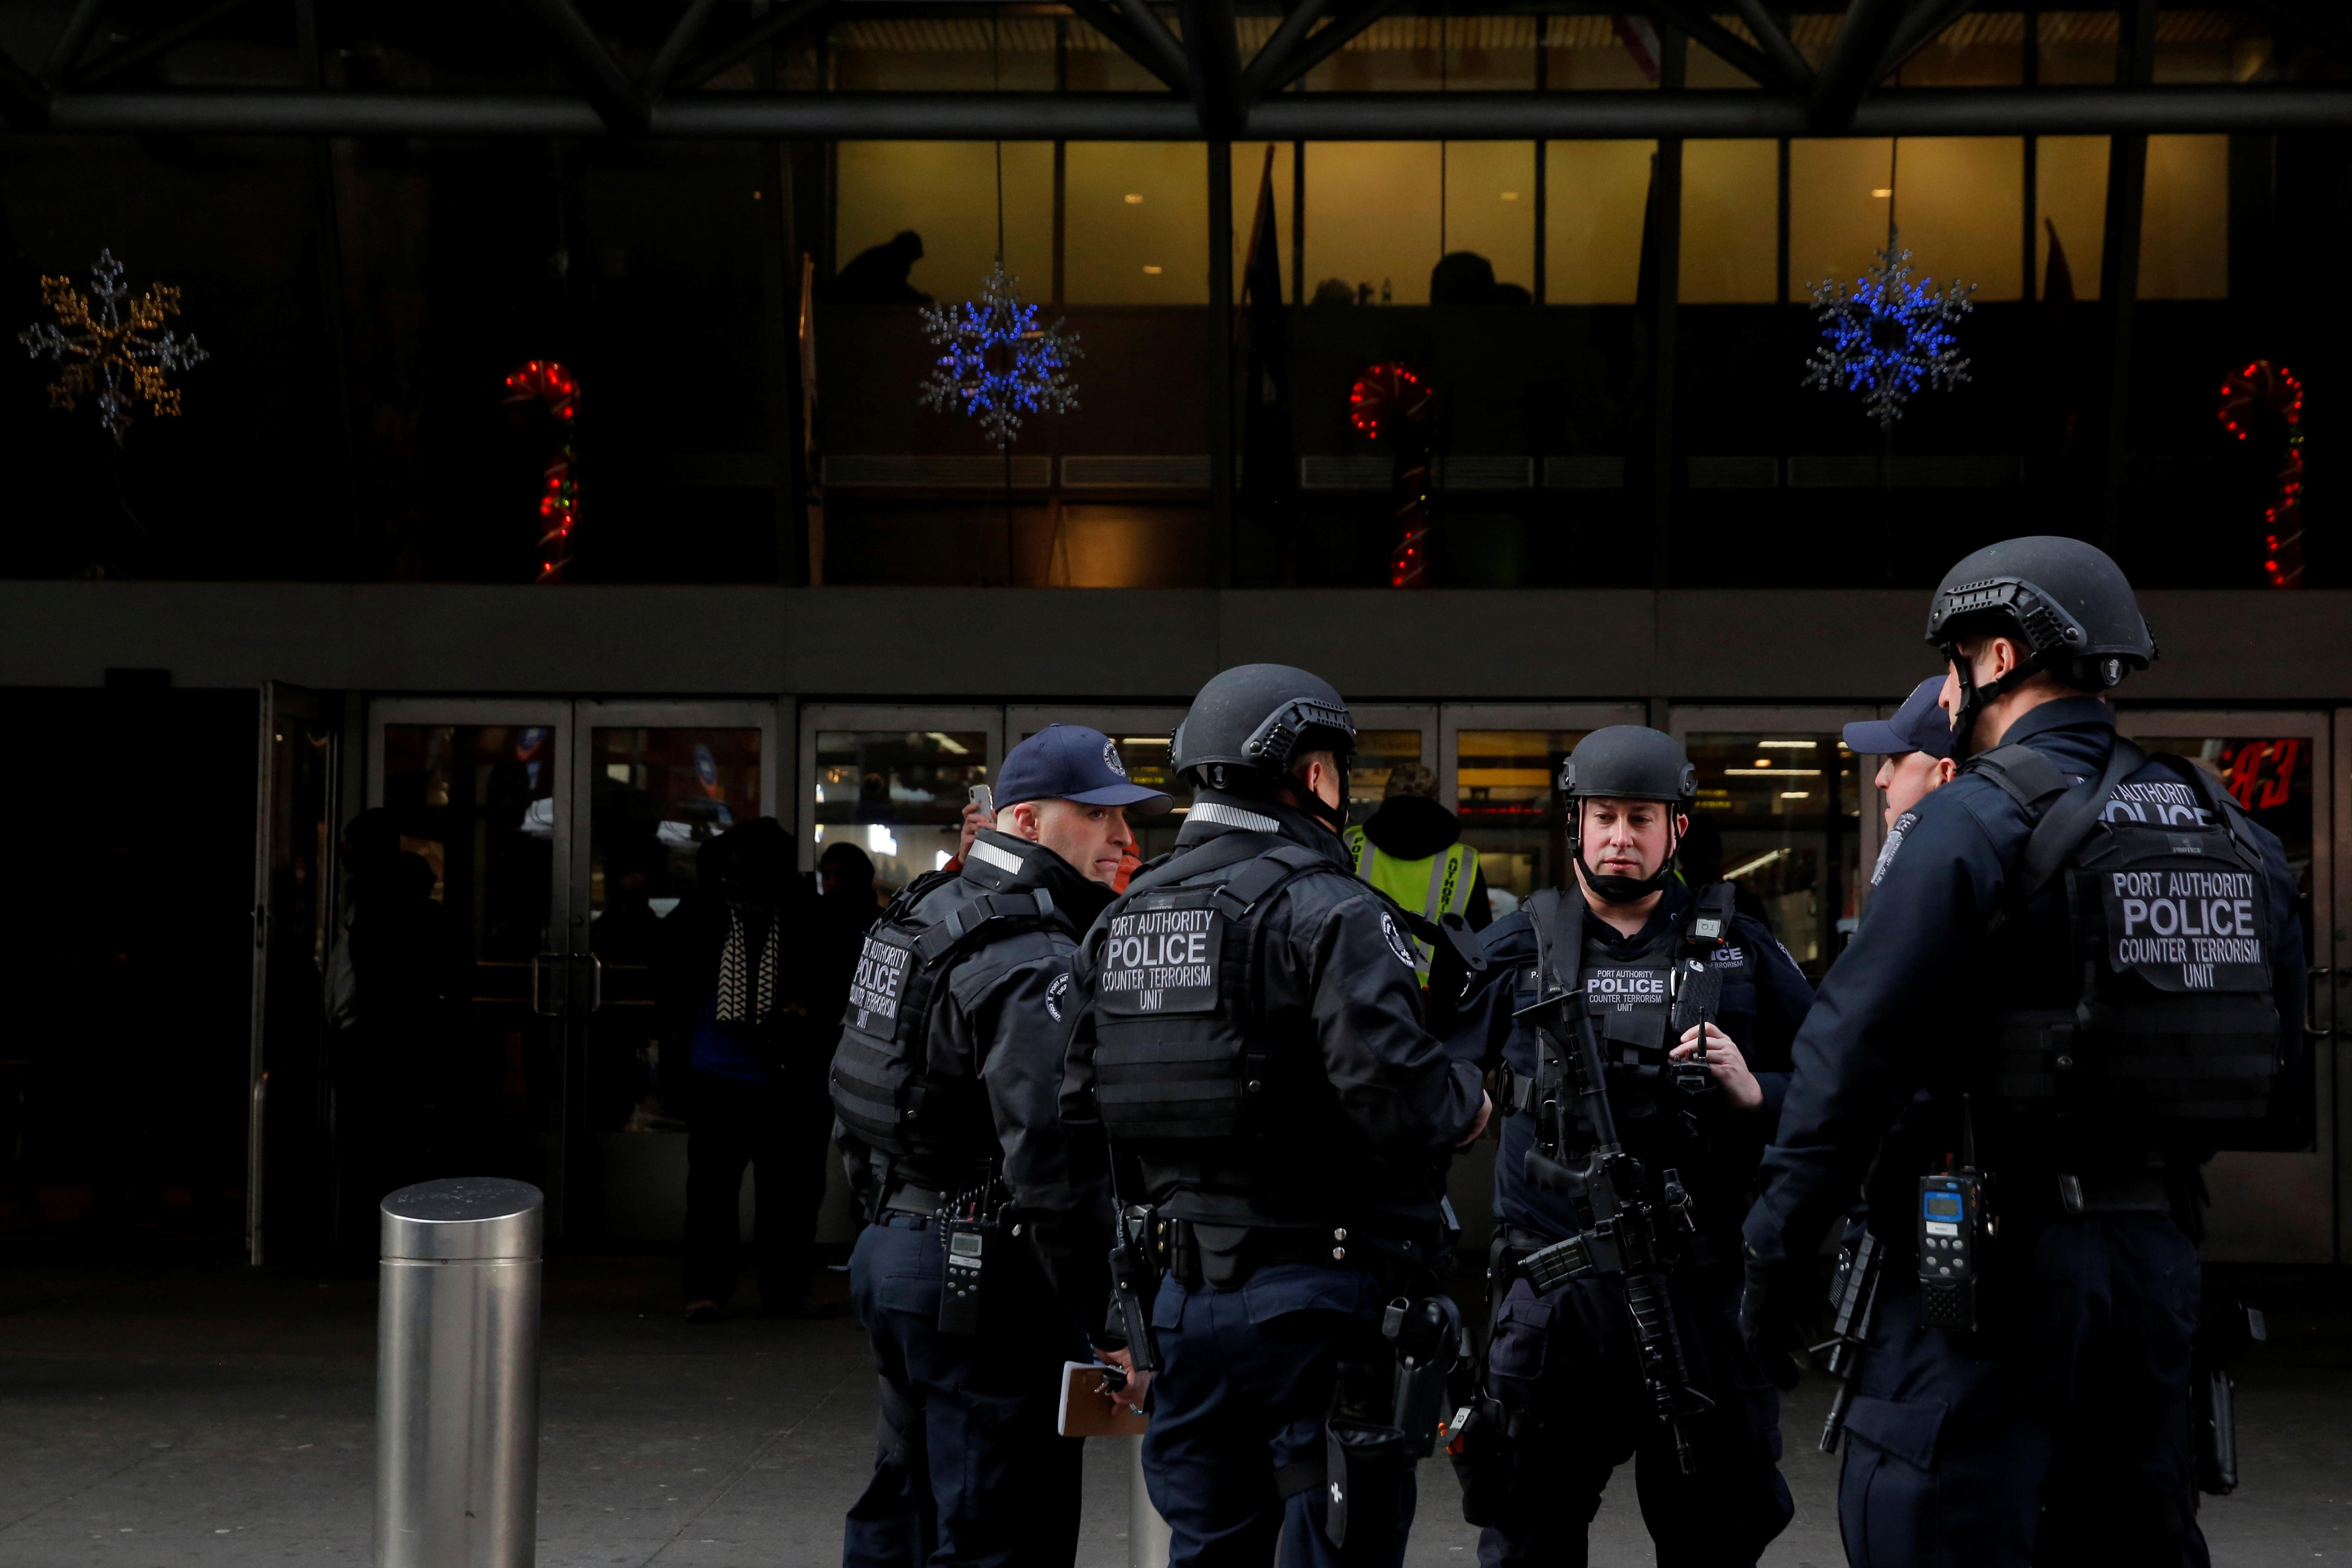 New York to adapt New Year's Eve security after botched suicide bomb